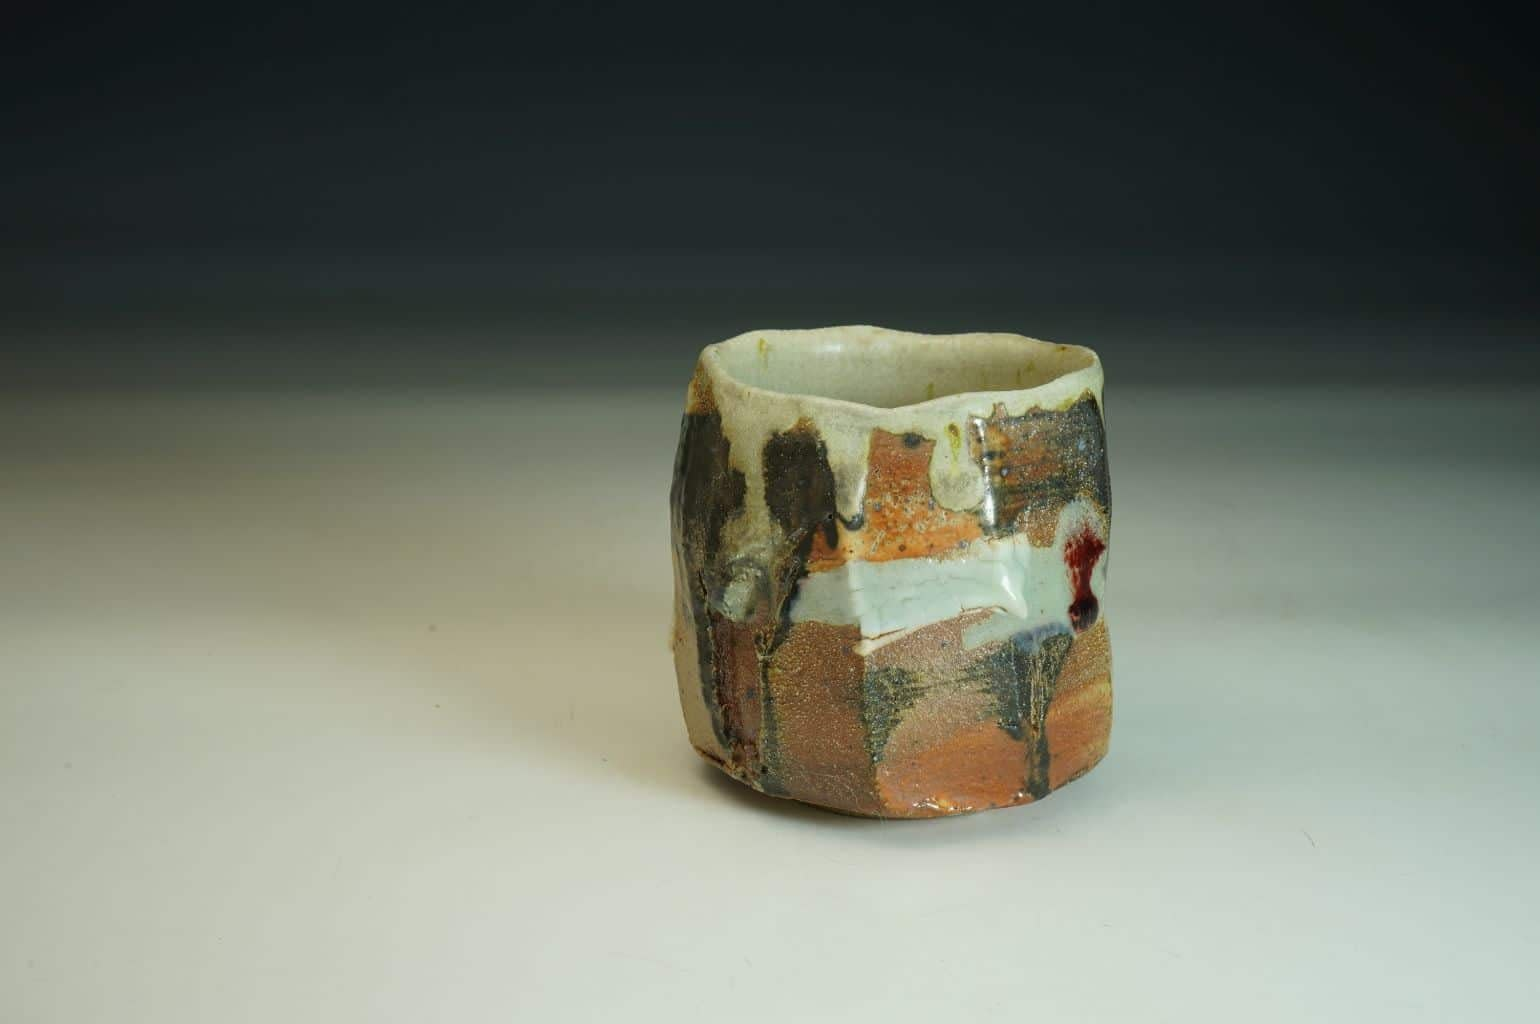 Beautiful wood-fired Chawan tea bowl in stoneware. An interesting out surface wood-fired with soda flashing.